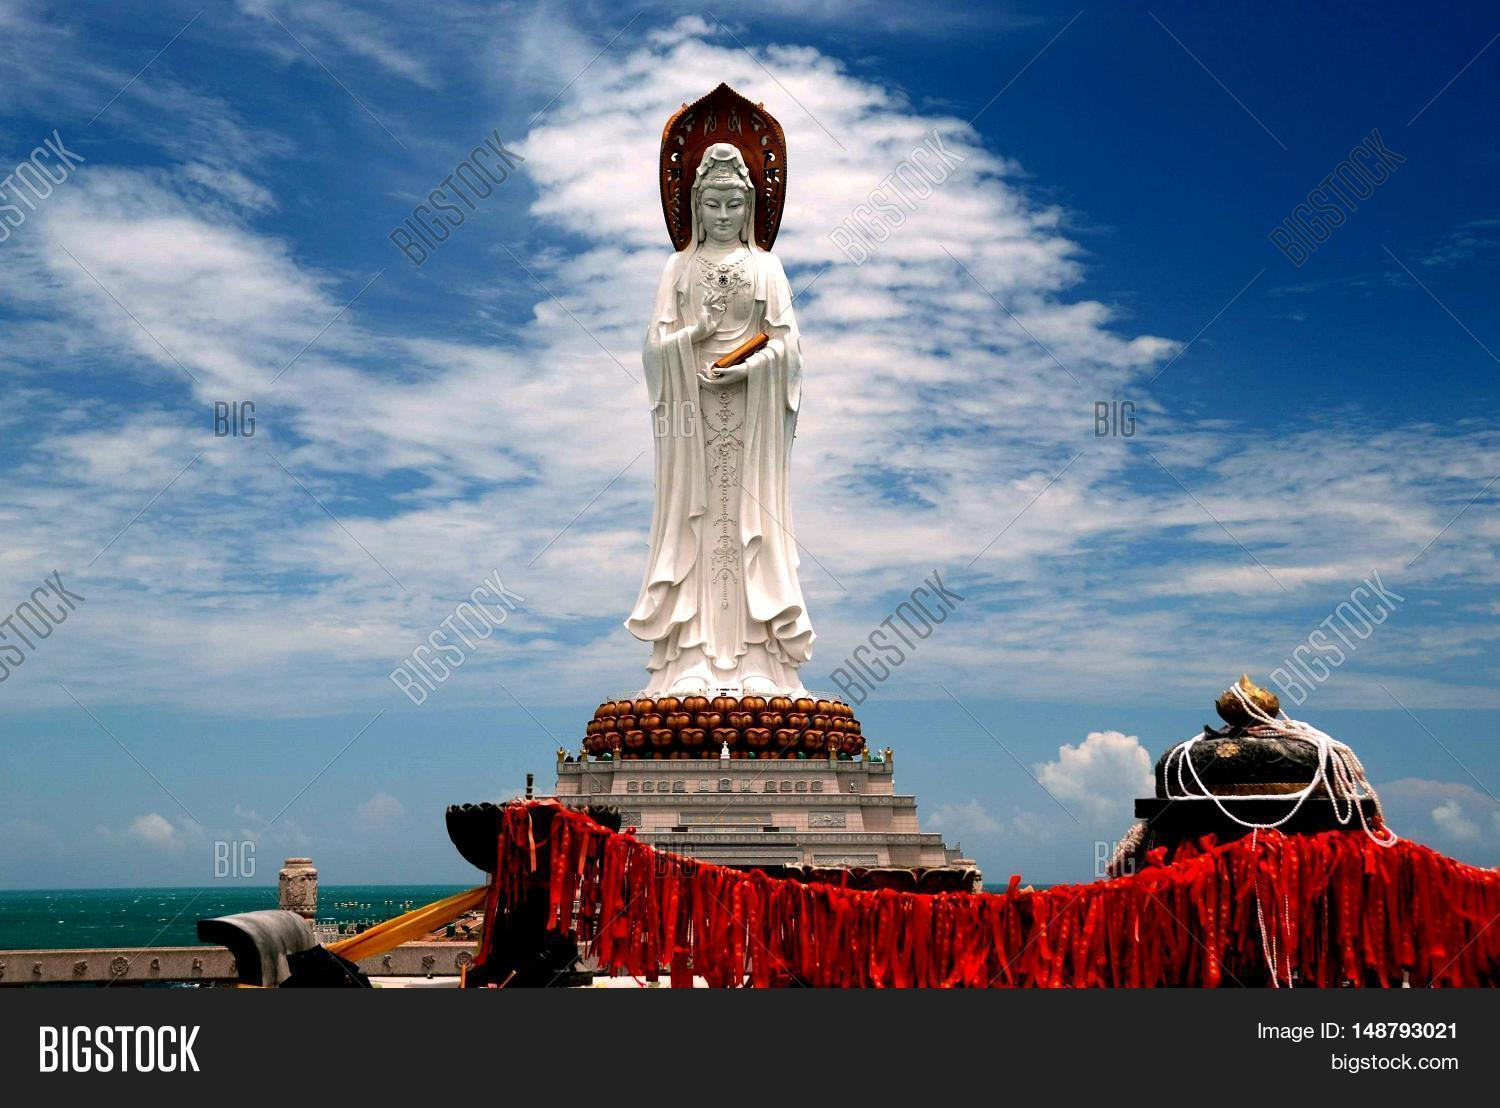 buddhist single men in sullivans island Green singles dating site members are open-minded, liberal and conscious dating for vegans, vegetarians, environmentalists and animal rights activists.